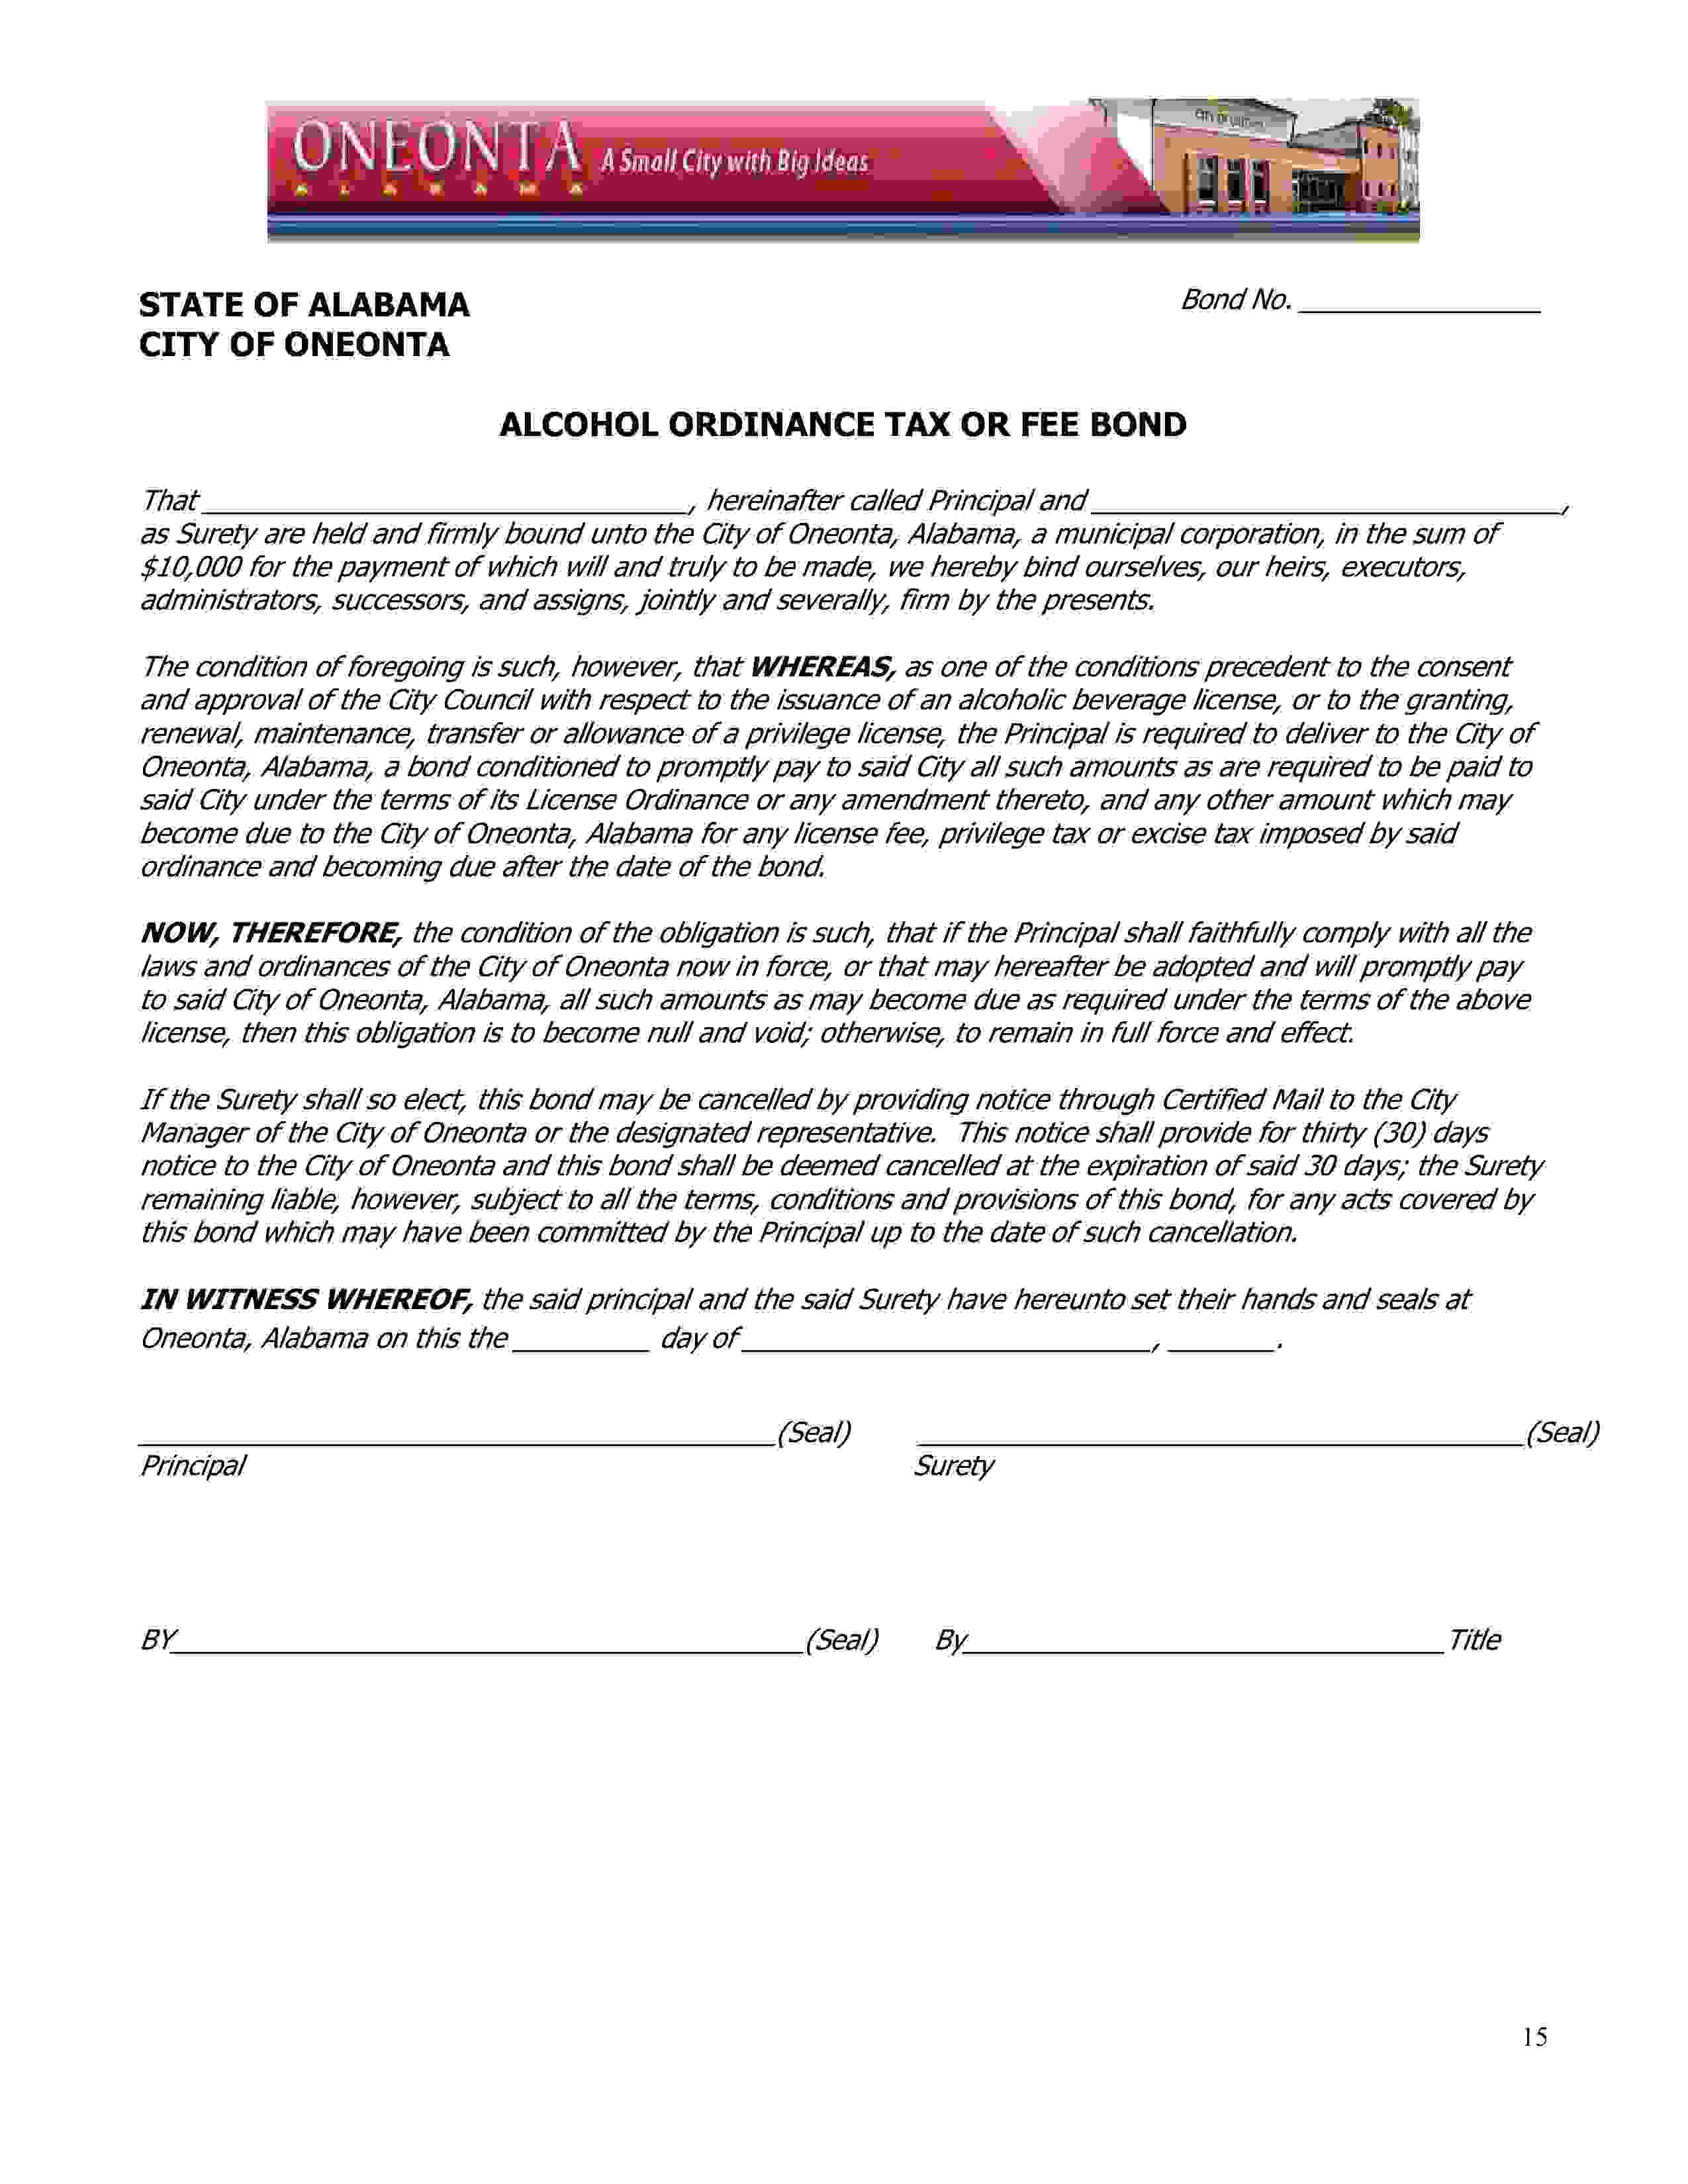 City of Oneonta Oneonta Alcohol Ordinance Tax or Fee sample image